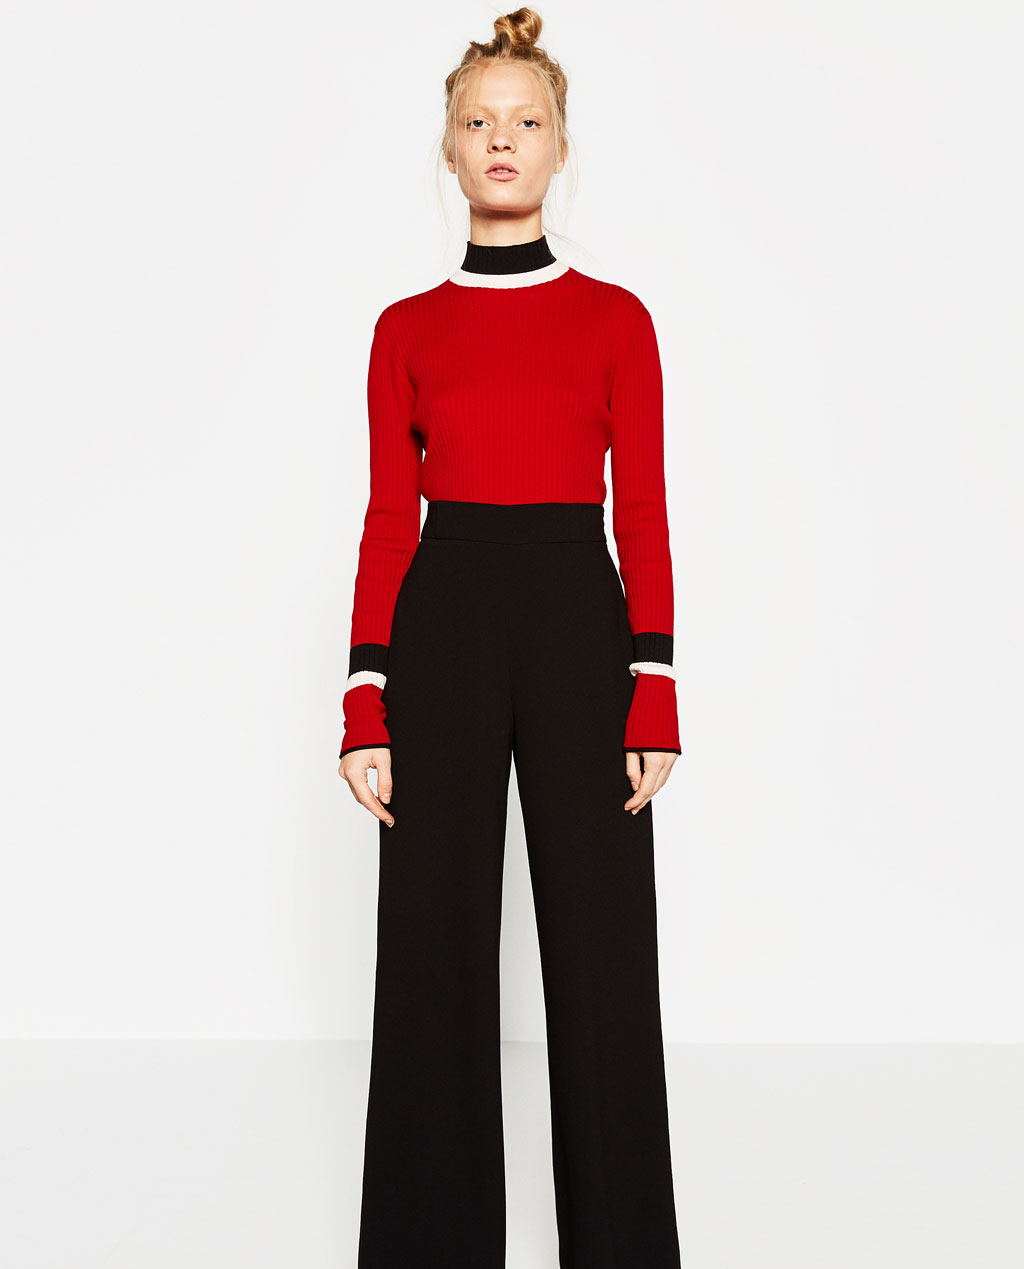 Zara clothes online ireland